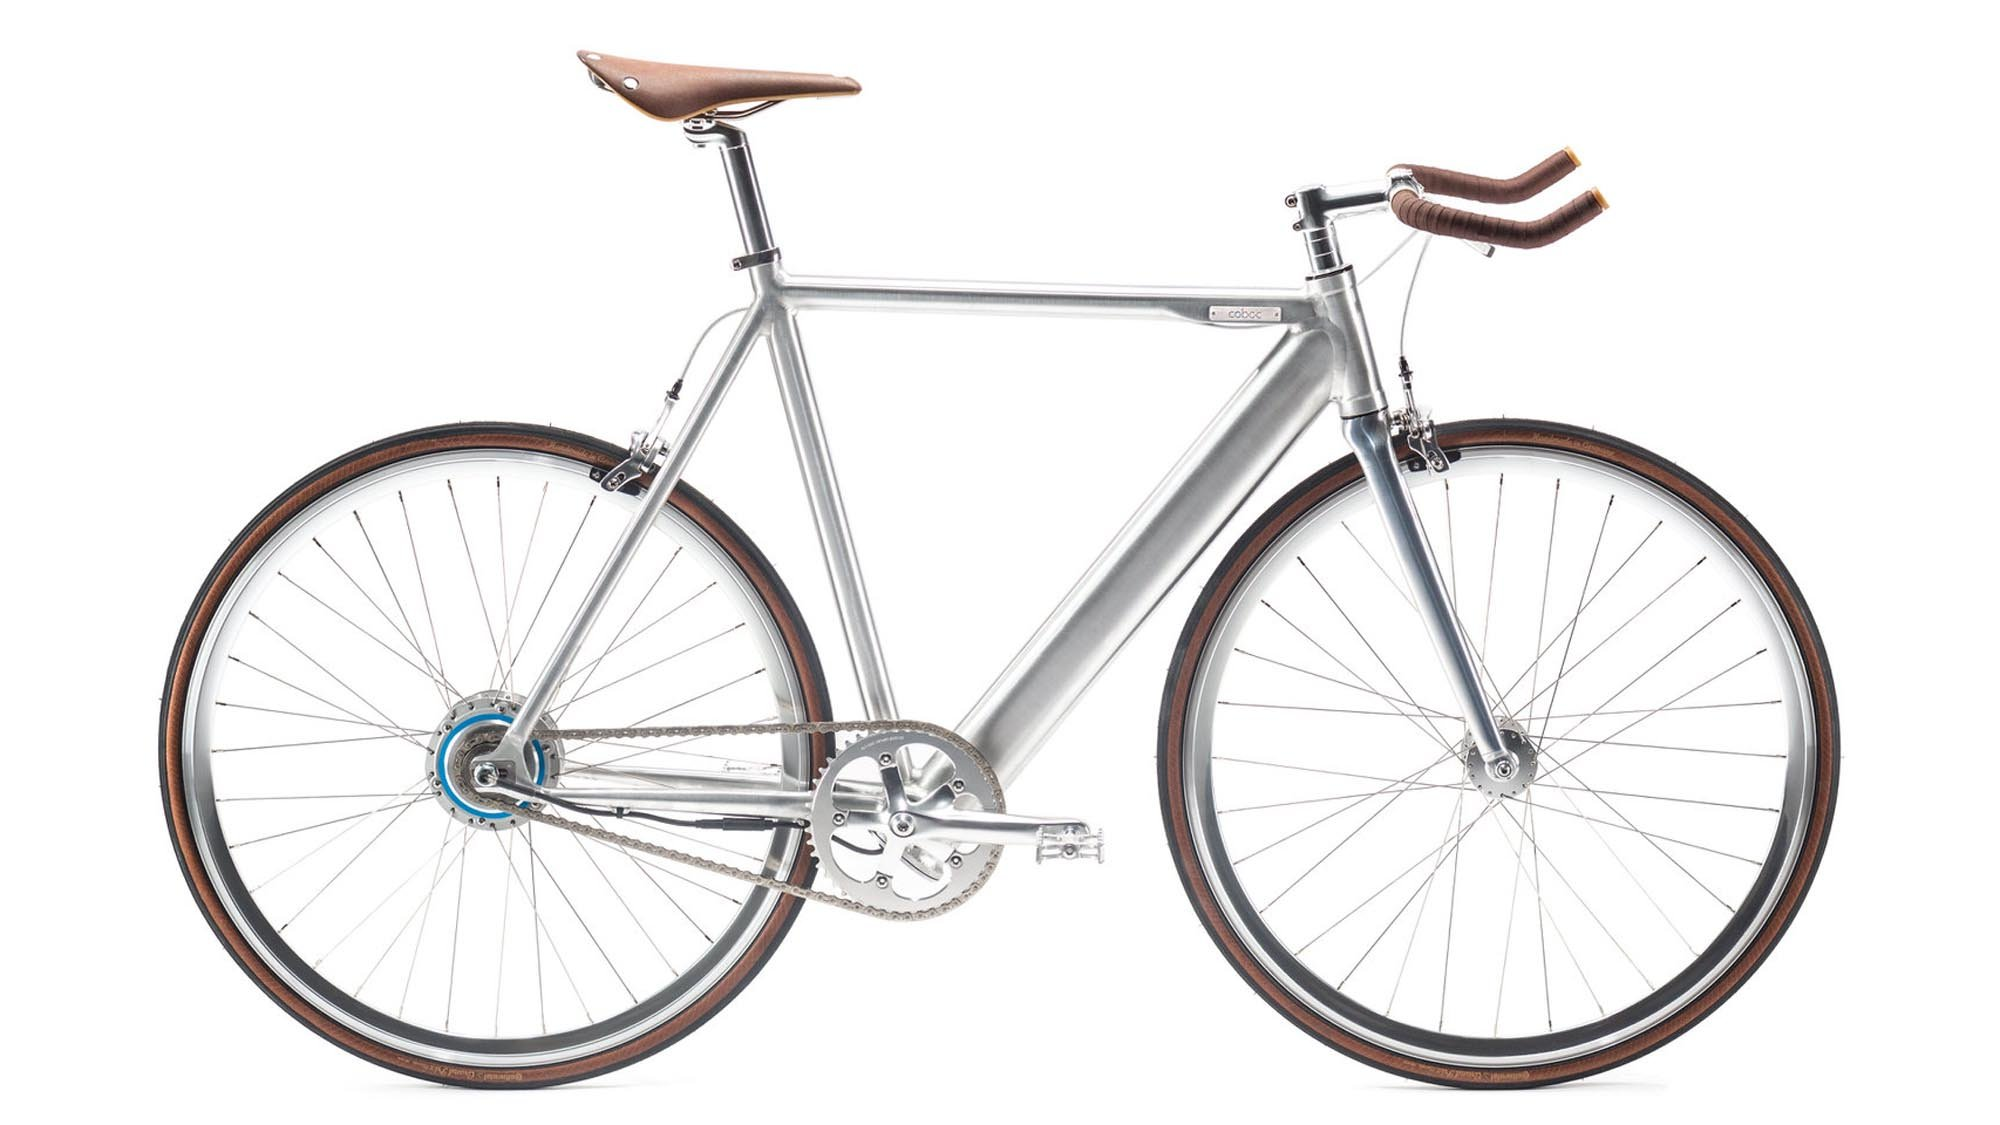 Best cycling bike deals across Boxing Day sales 2016